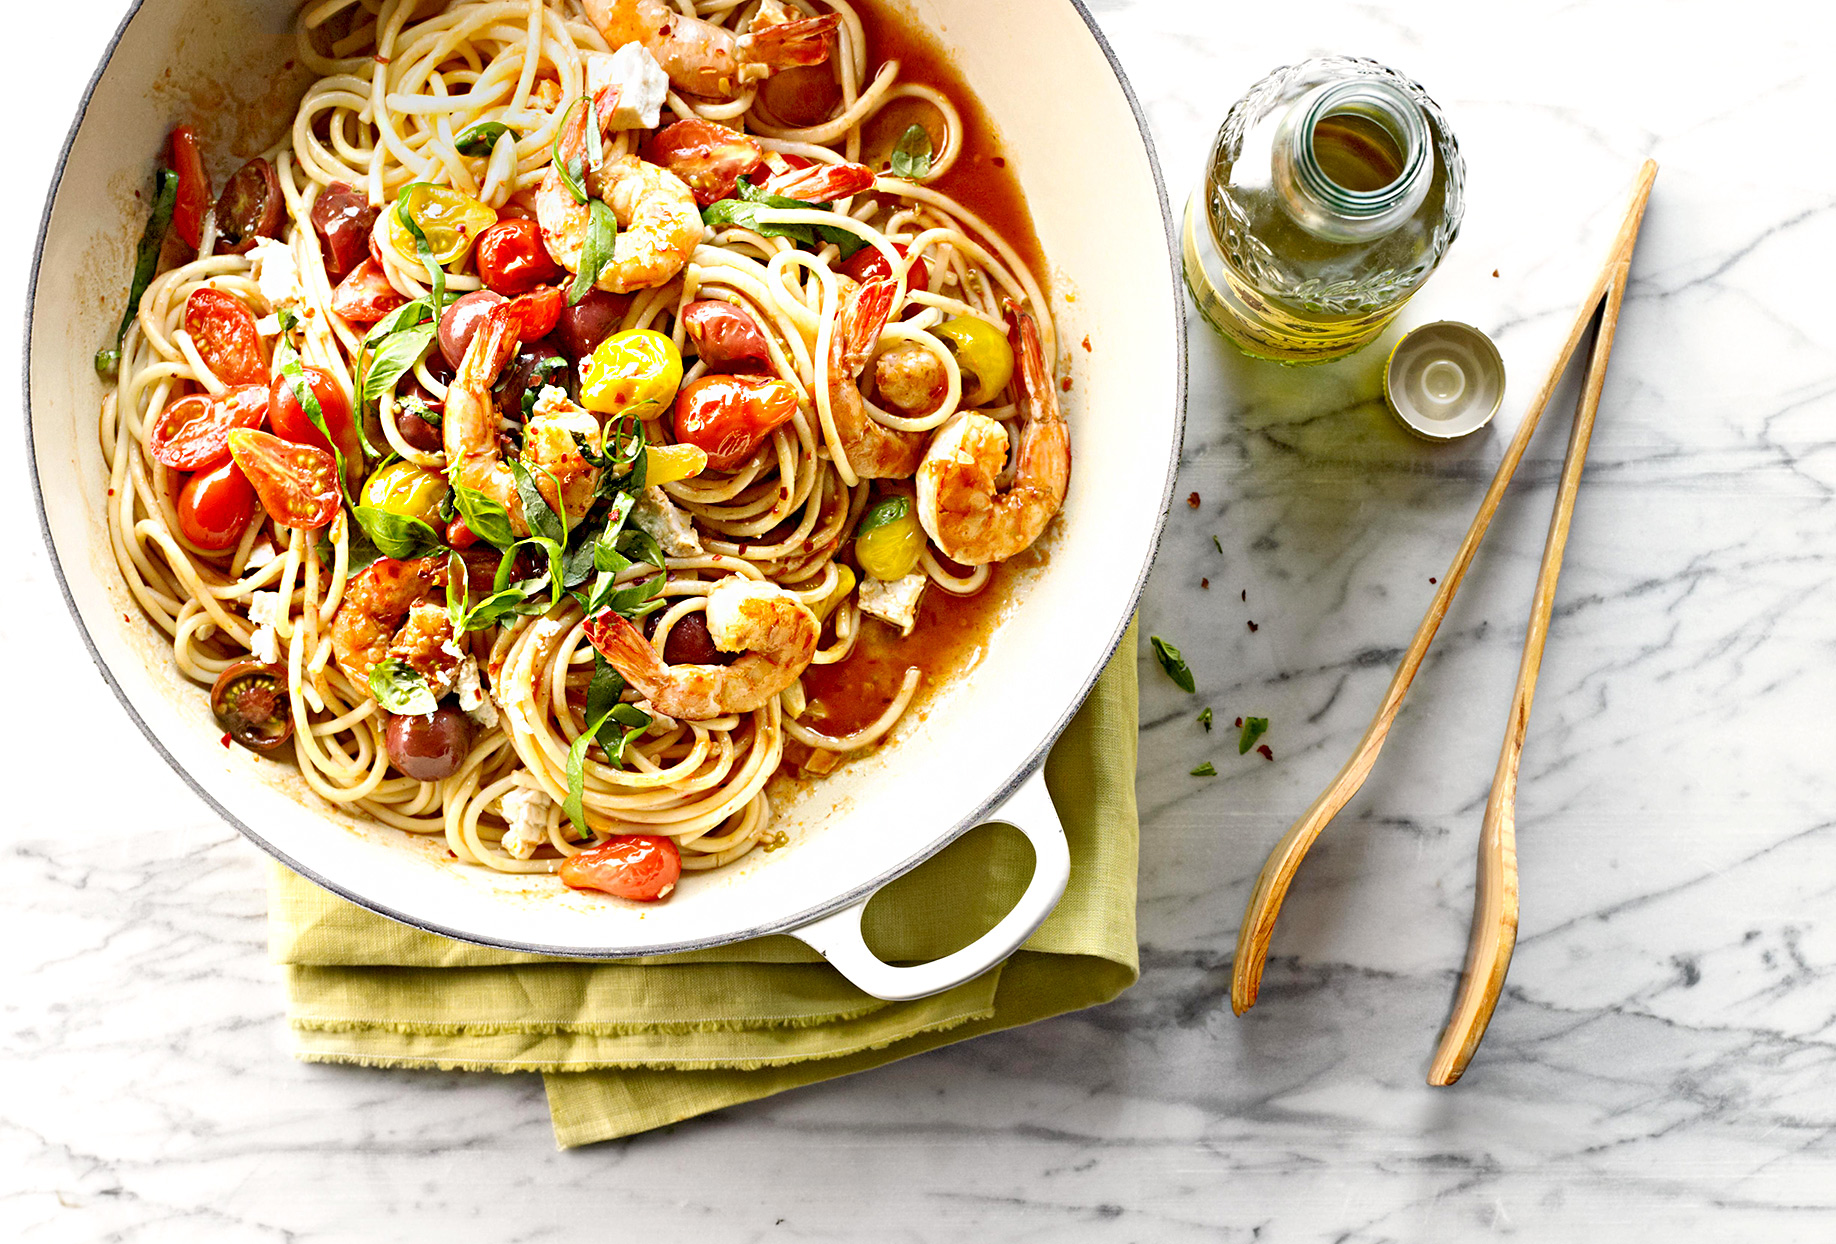 Bucatini with Shrimp and Spicy Cherry Tomato Pan Sauce